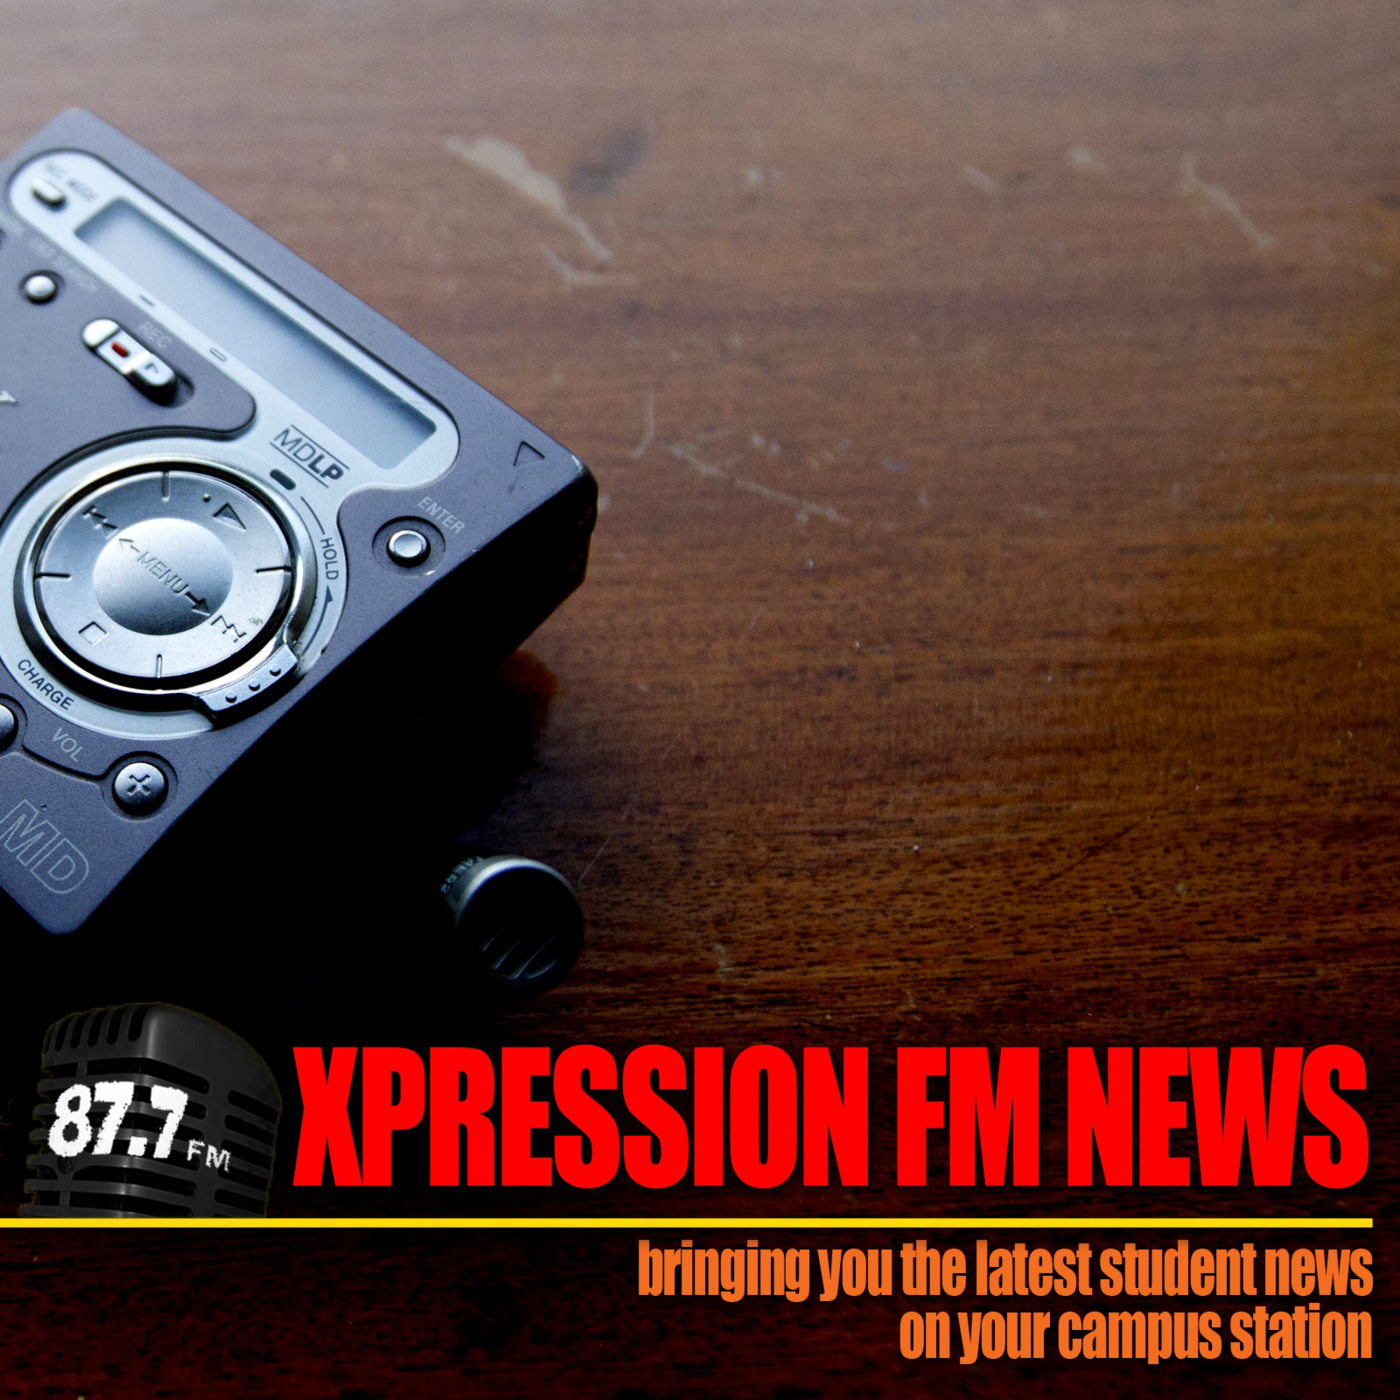 Xpression FM News